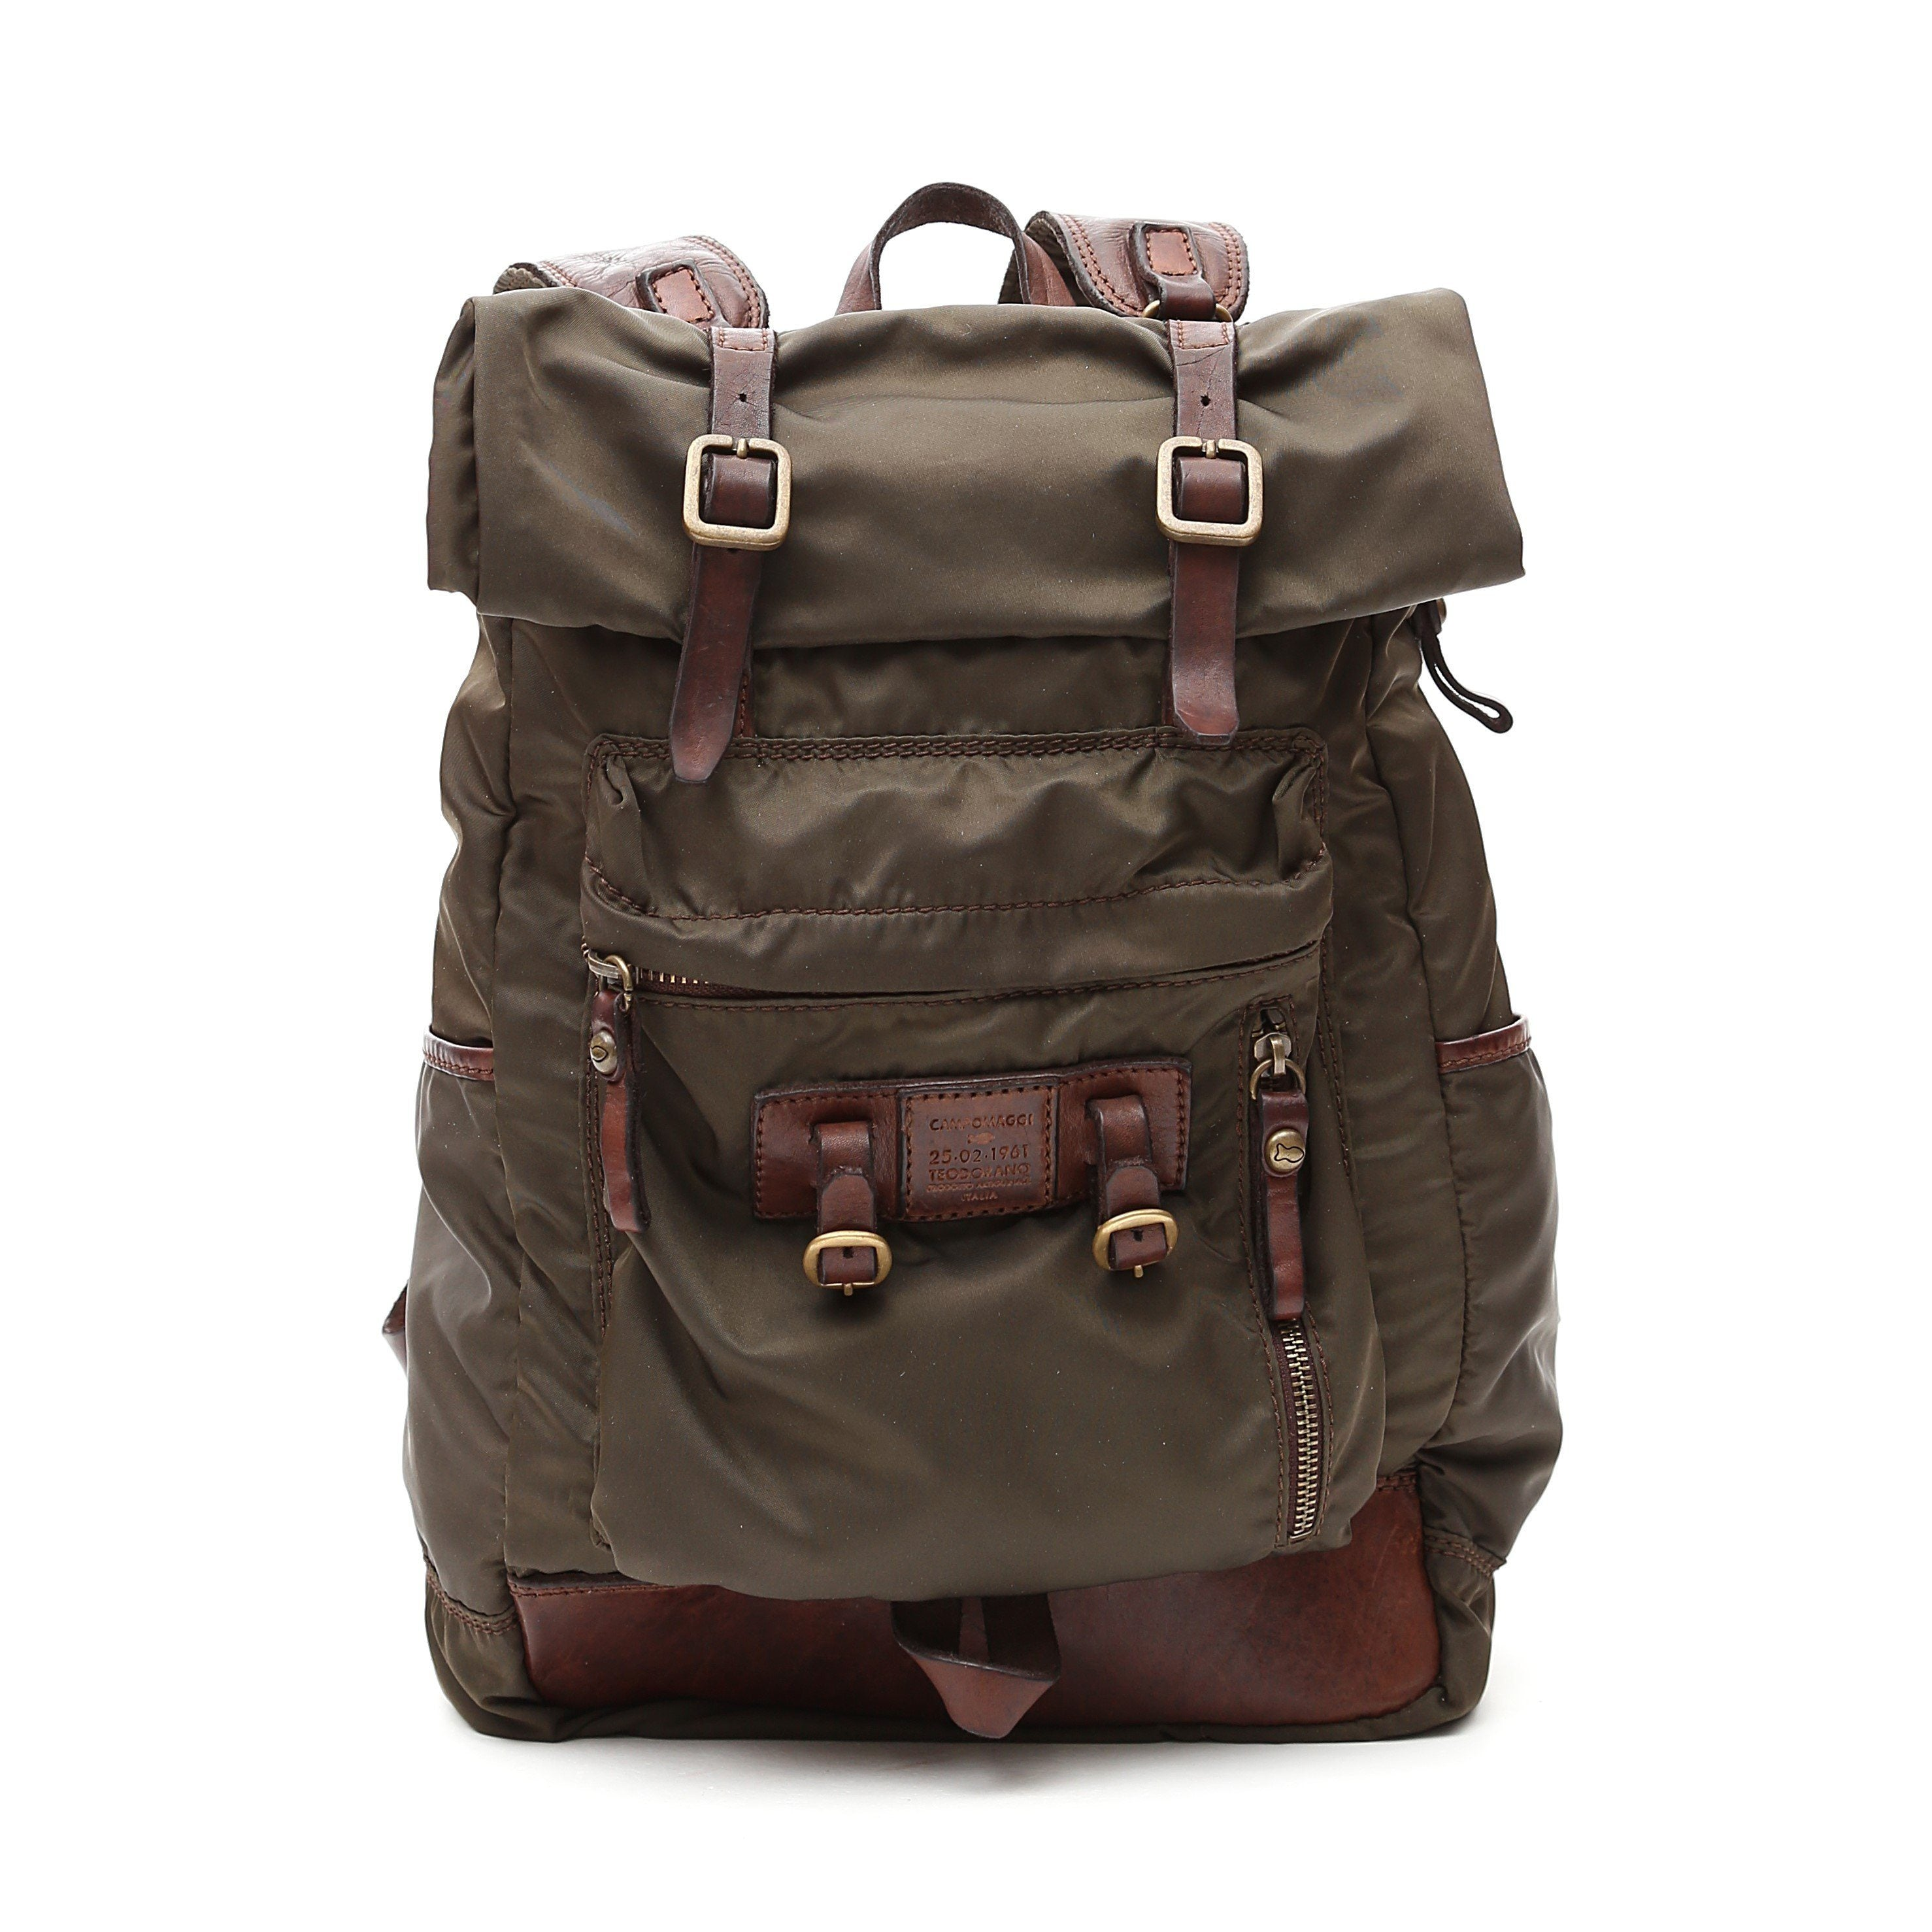 Image of Campomaggi Military Backpack, Leather and Nylon